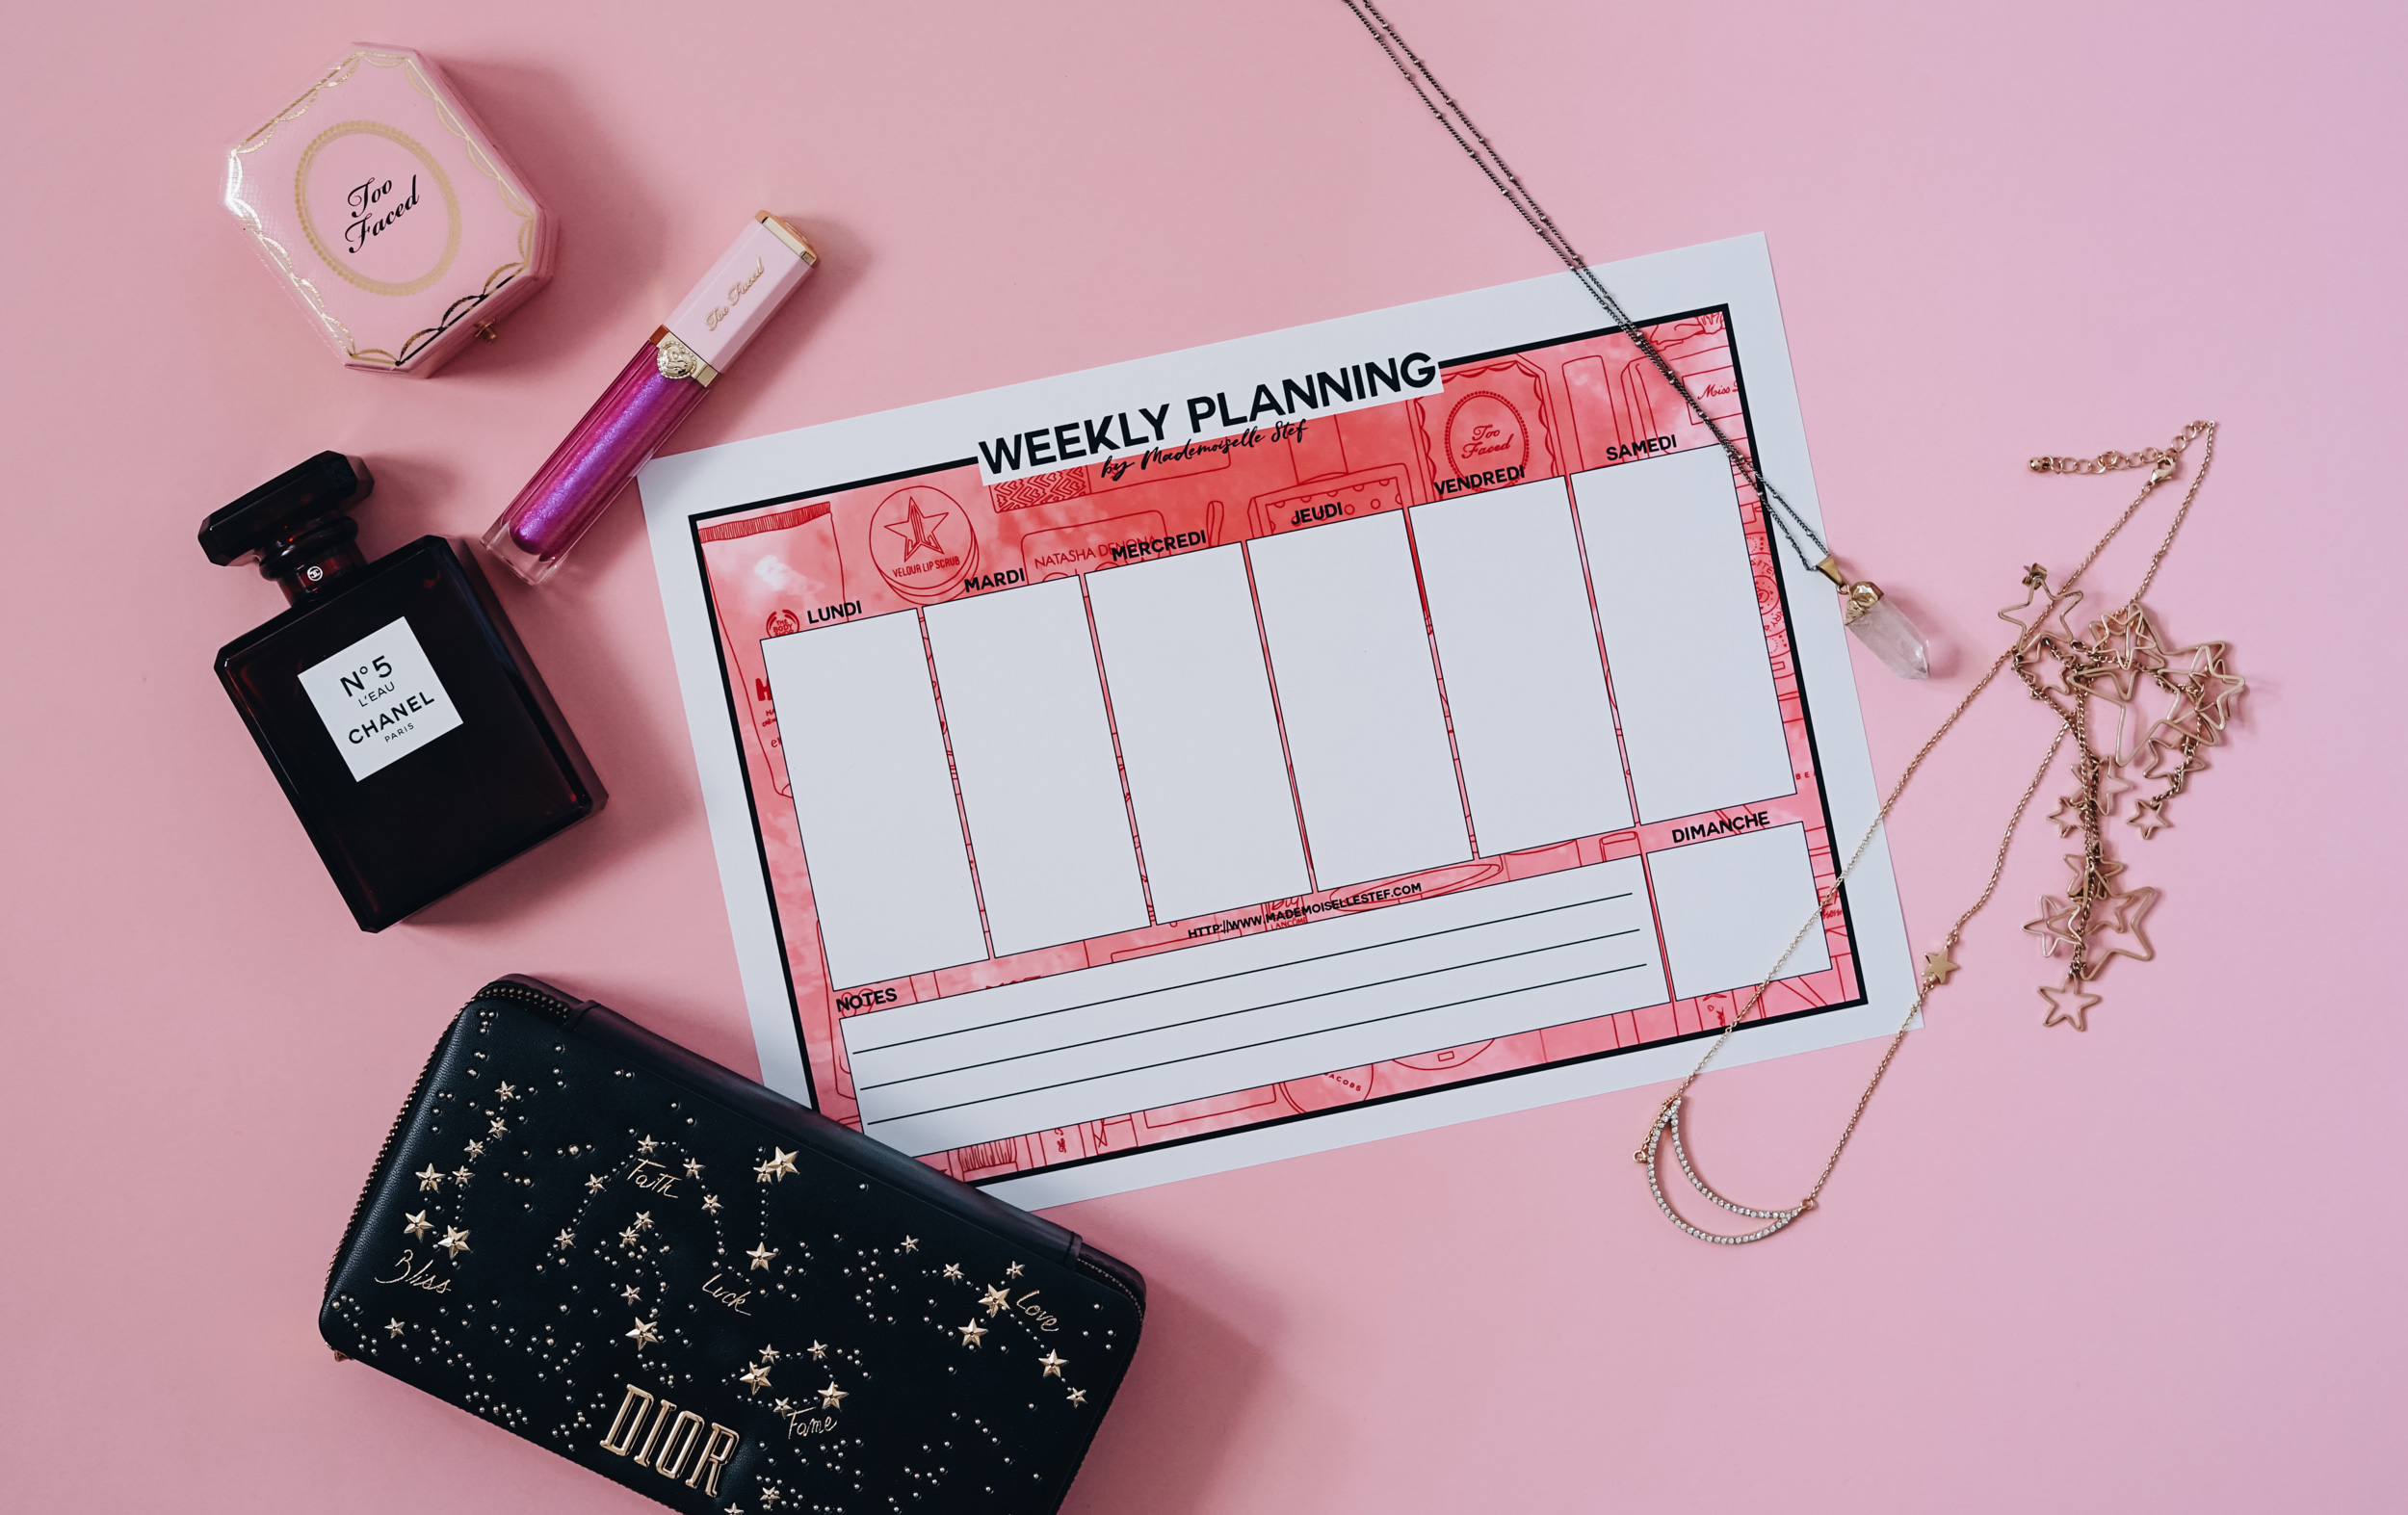 weekly planning janvier 2019